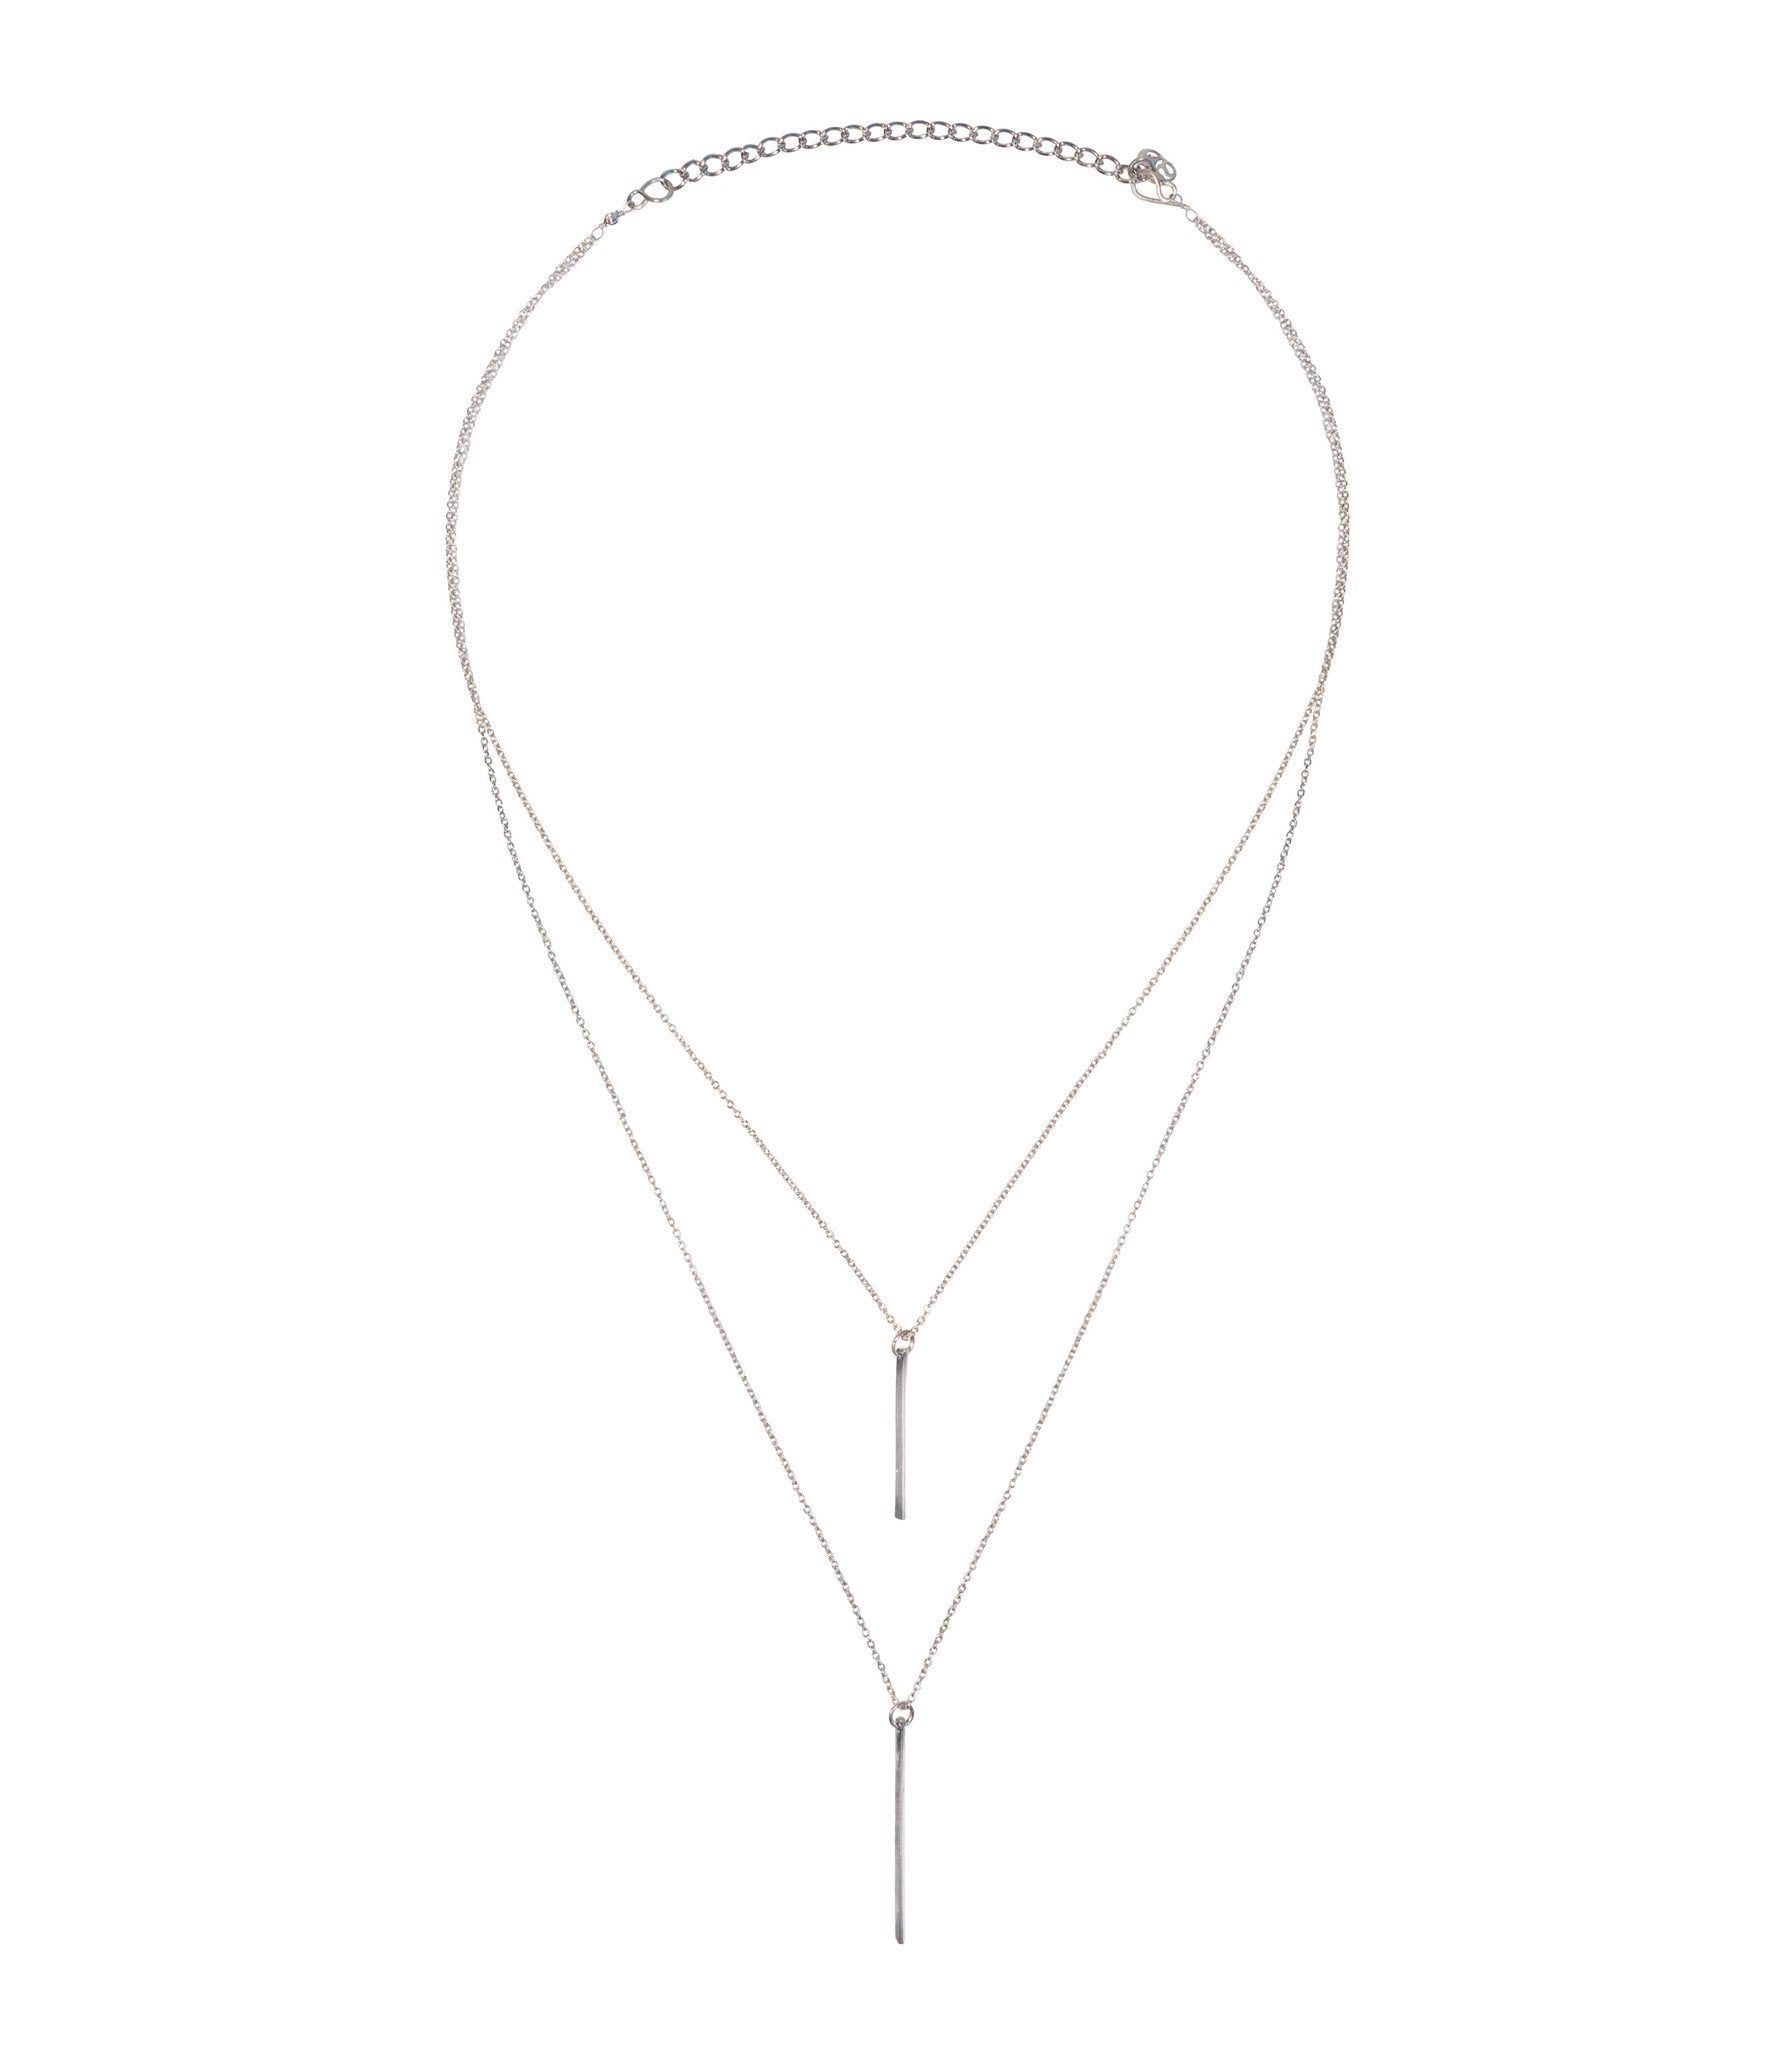 Handcrafted Rhodium Bar Layered Necklace